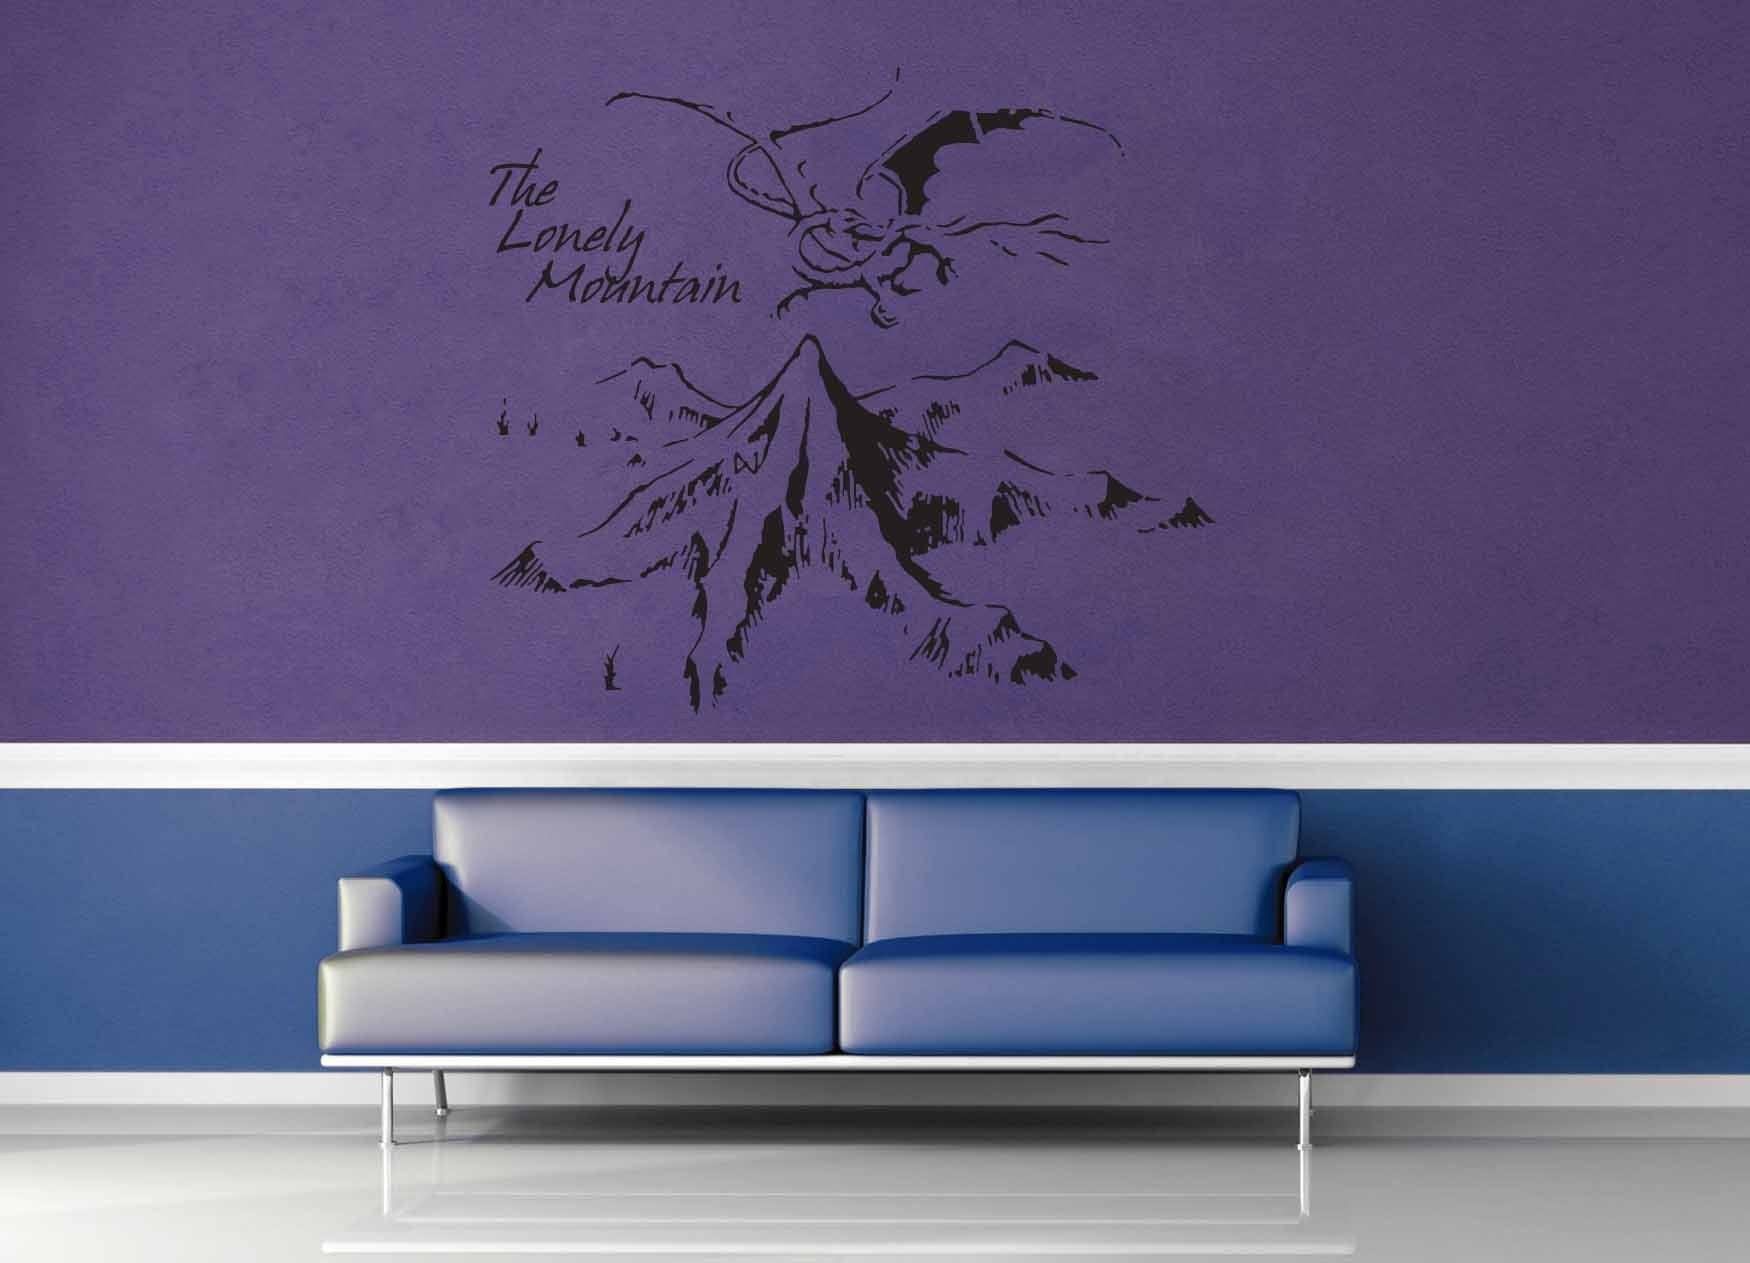 The lonely mountain tolkien wall decal geekerymade the lonely mountain tolkien wall decal amipublicfo Choice Image